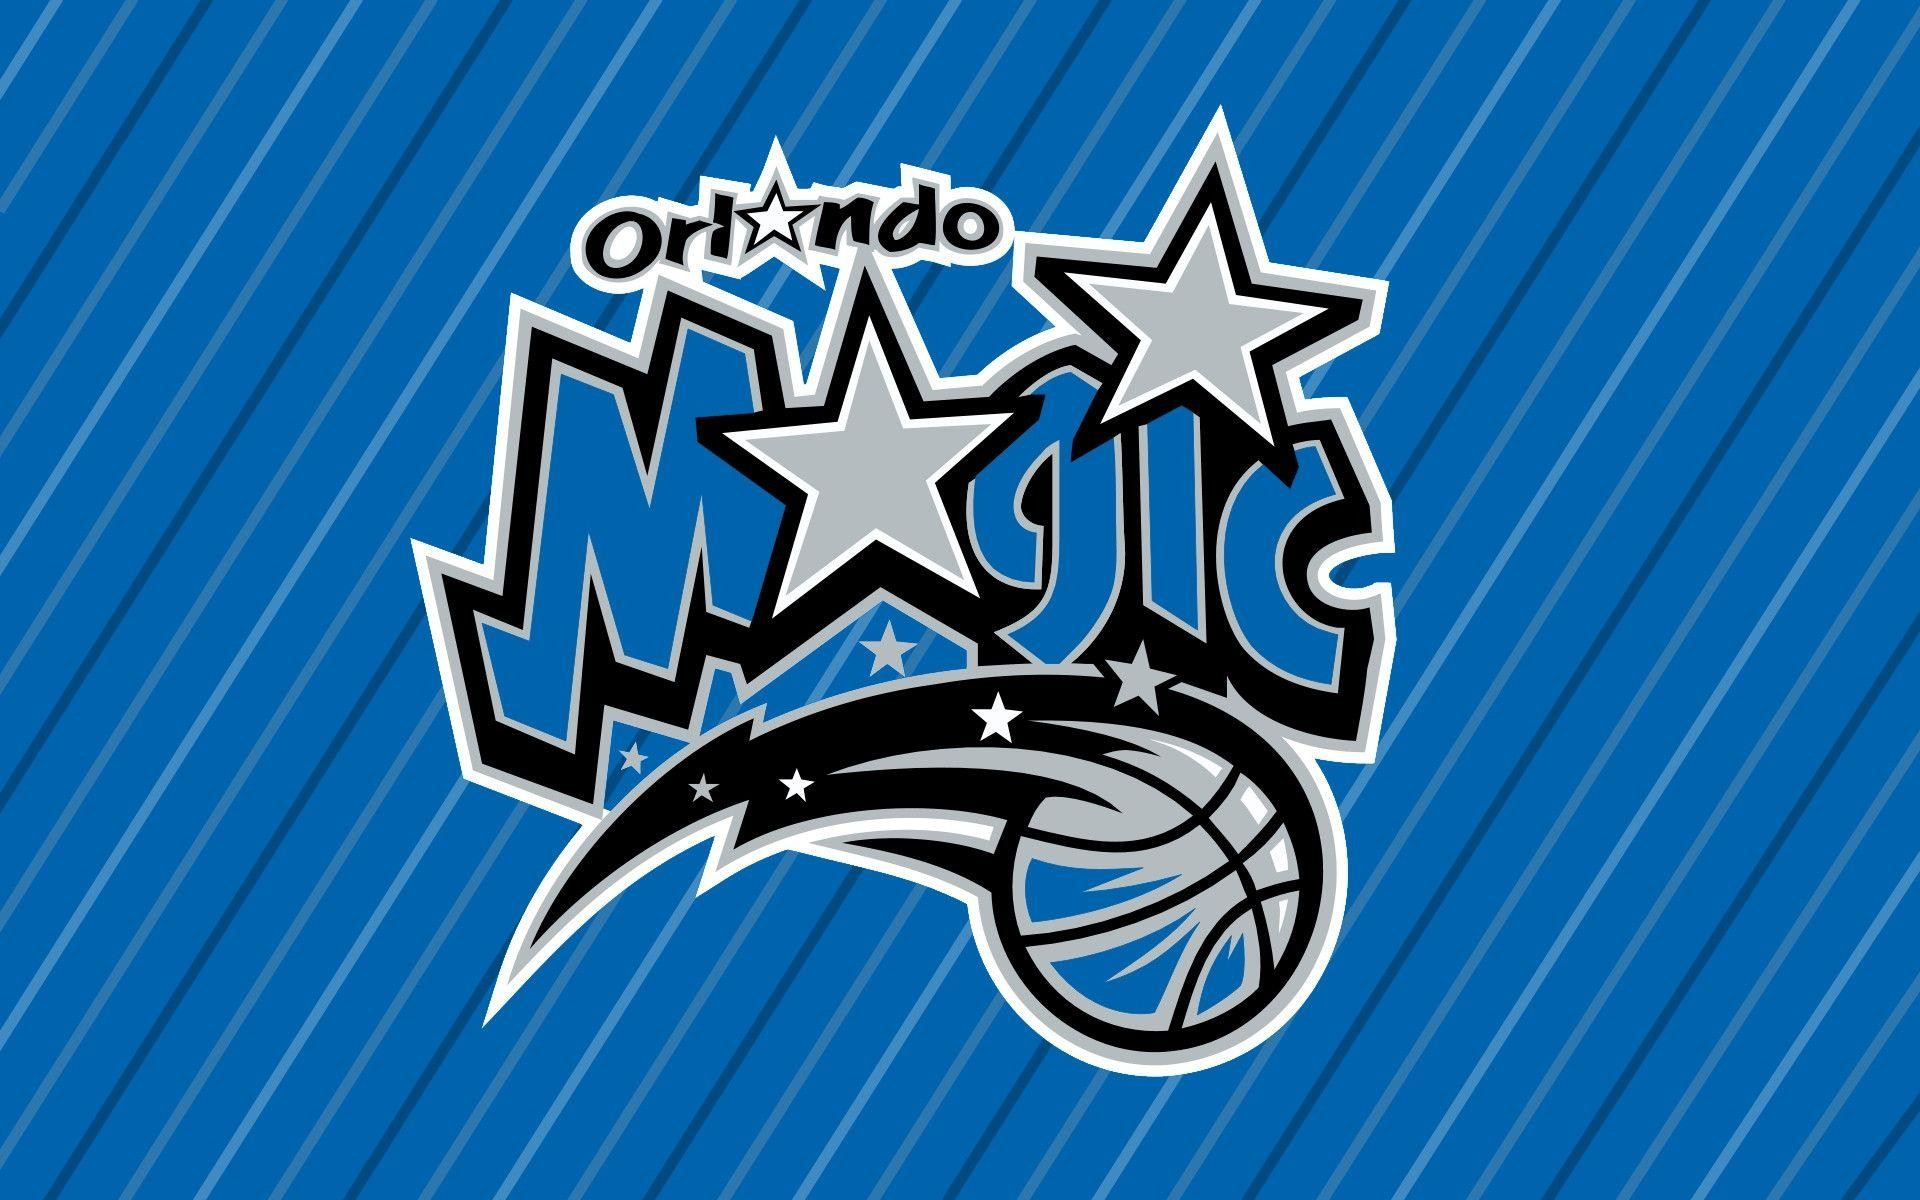 Orlando Magic Wallpapers 66 Pictures